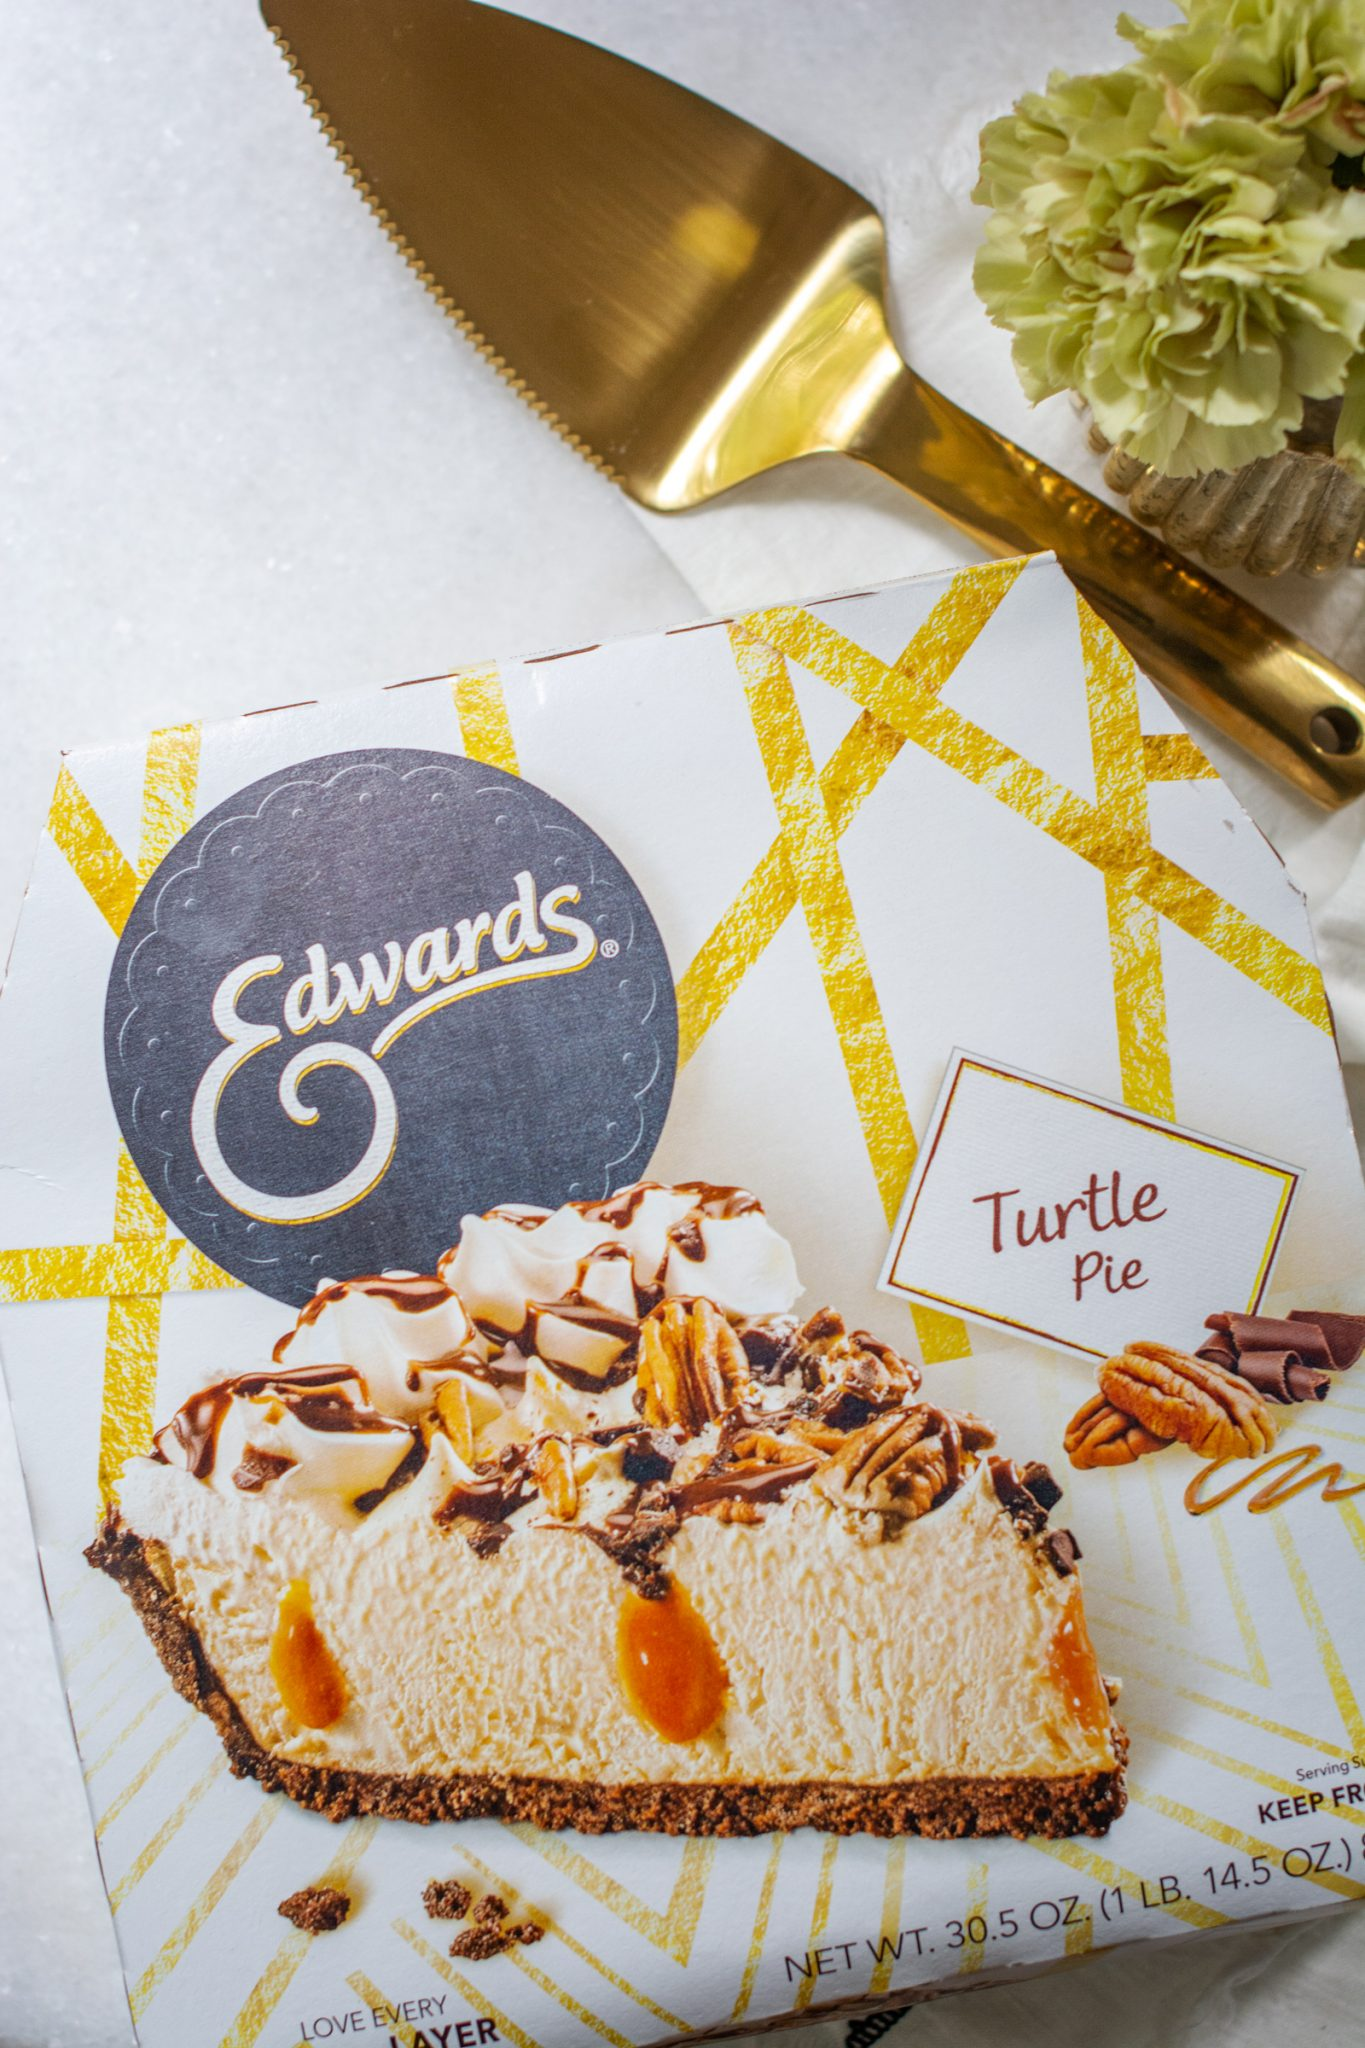 Edwards turtle pie package with gold pie slicer and flowers